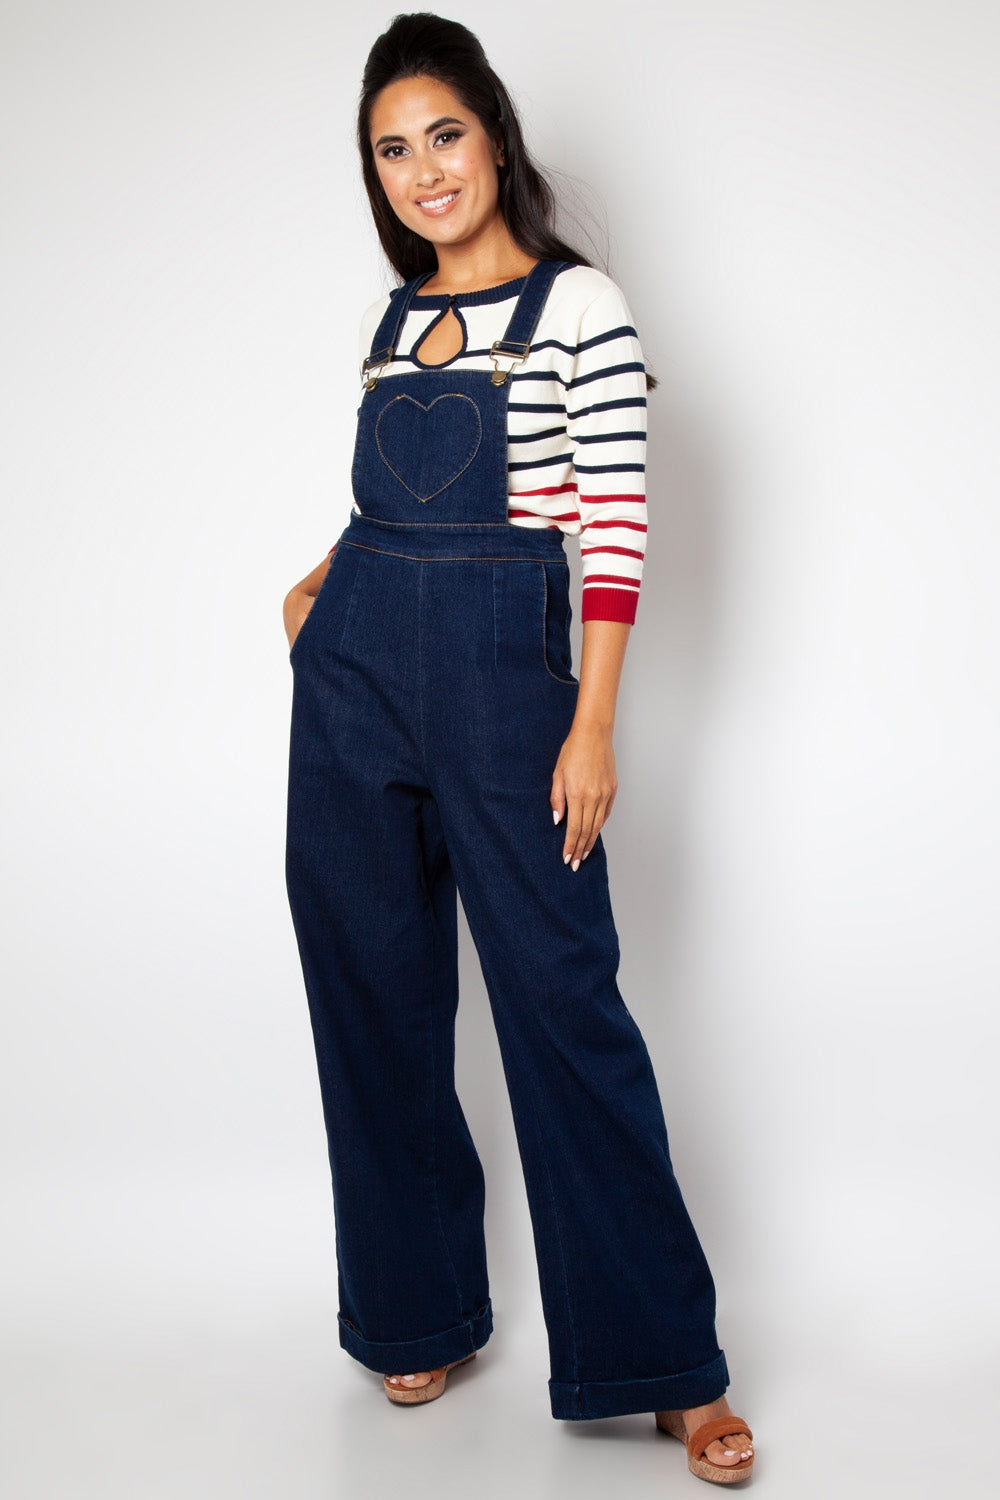 Voodoo Vixen Natalia Heart Pocket Dungaree